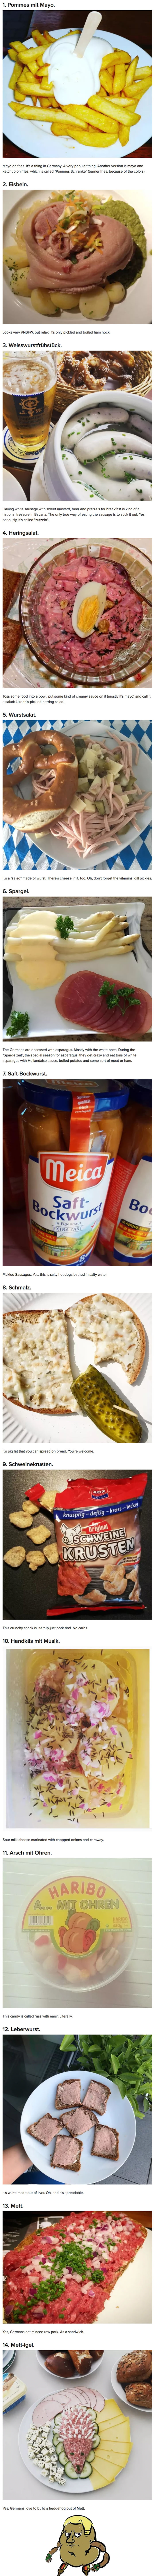 14 German Foods That The Rest Of The World Might Find Them Strange